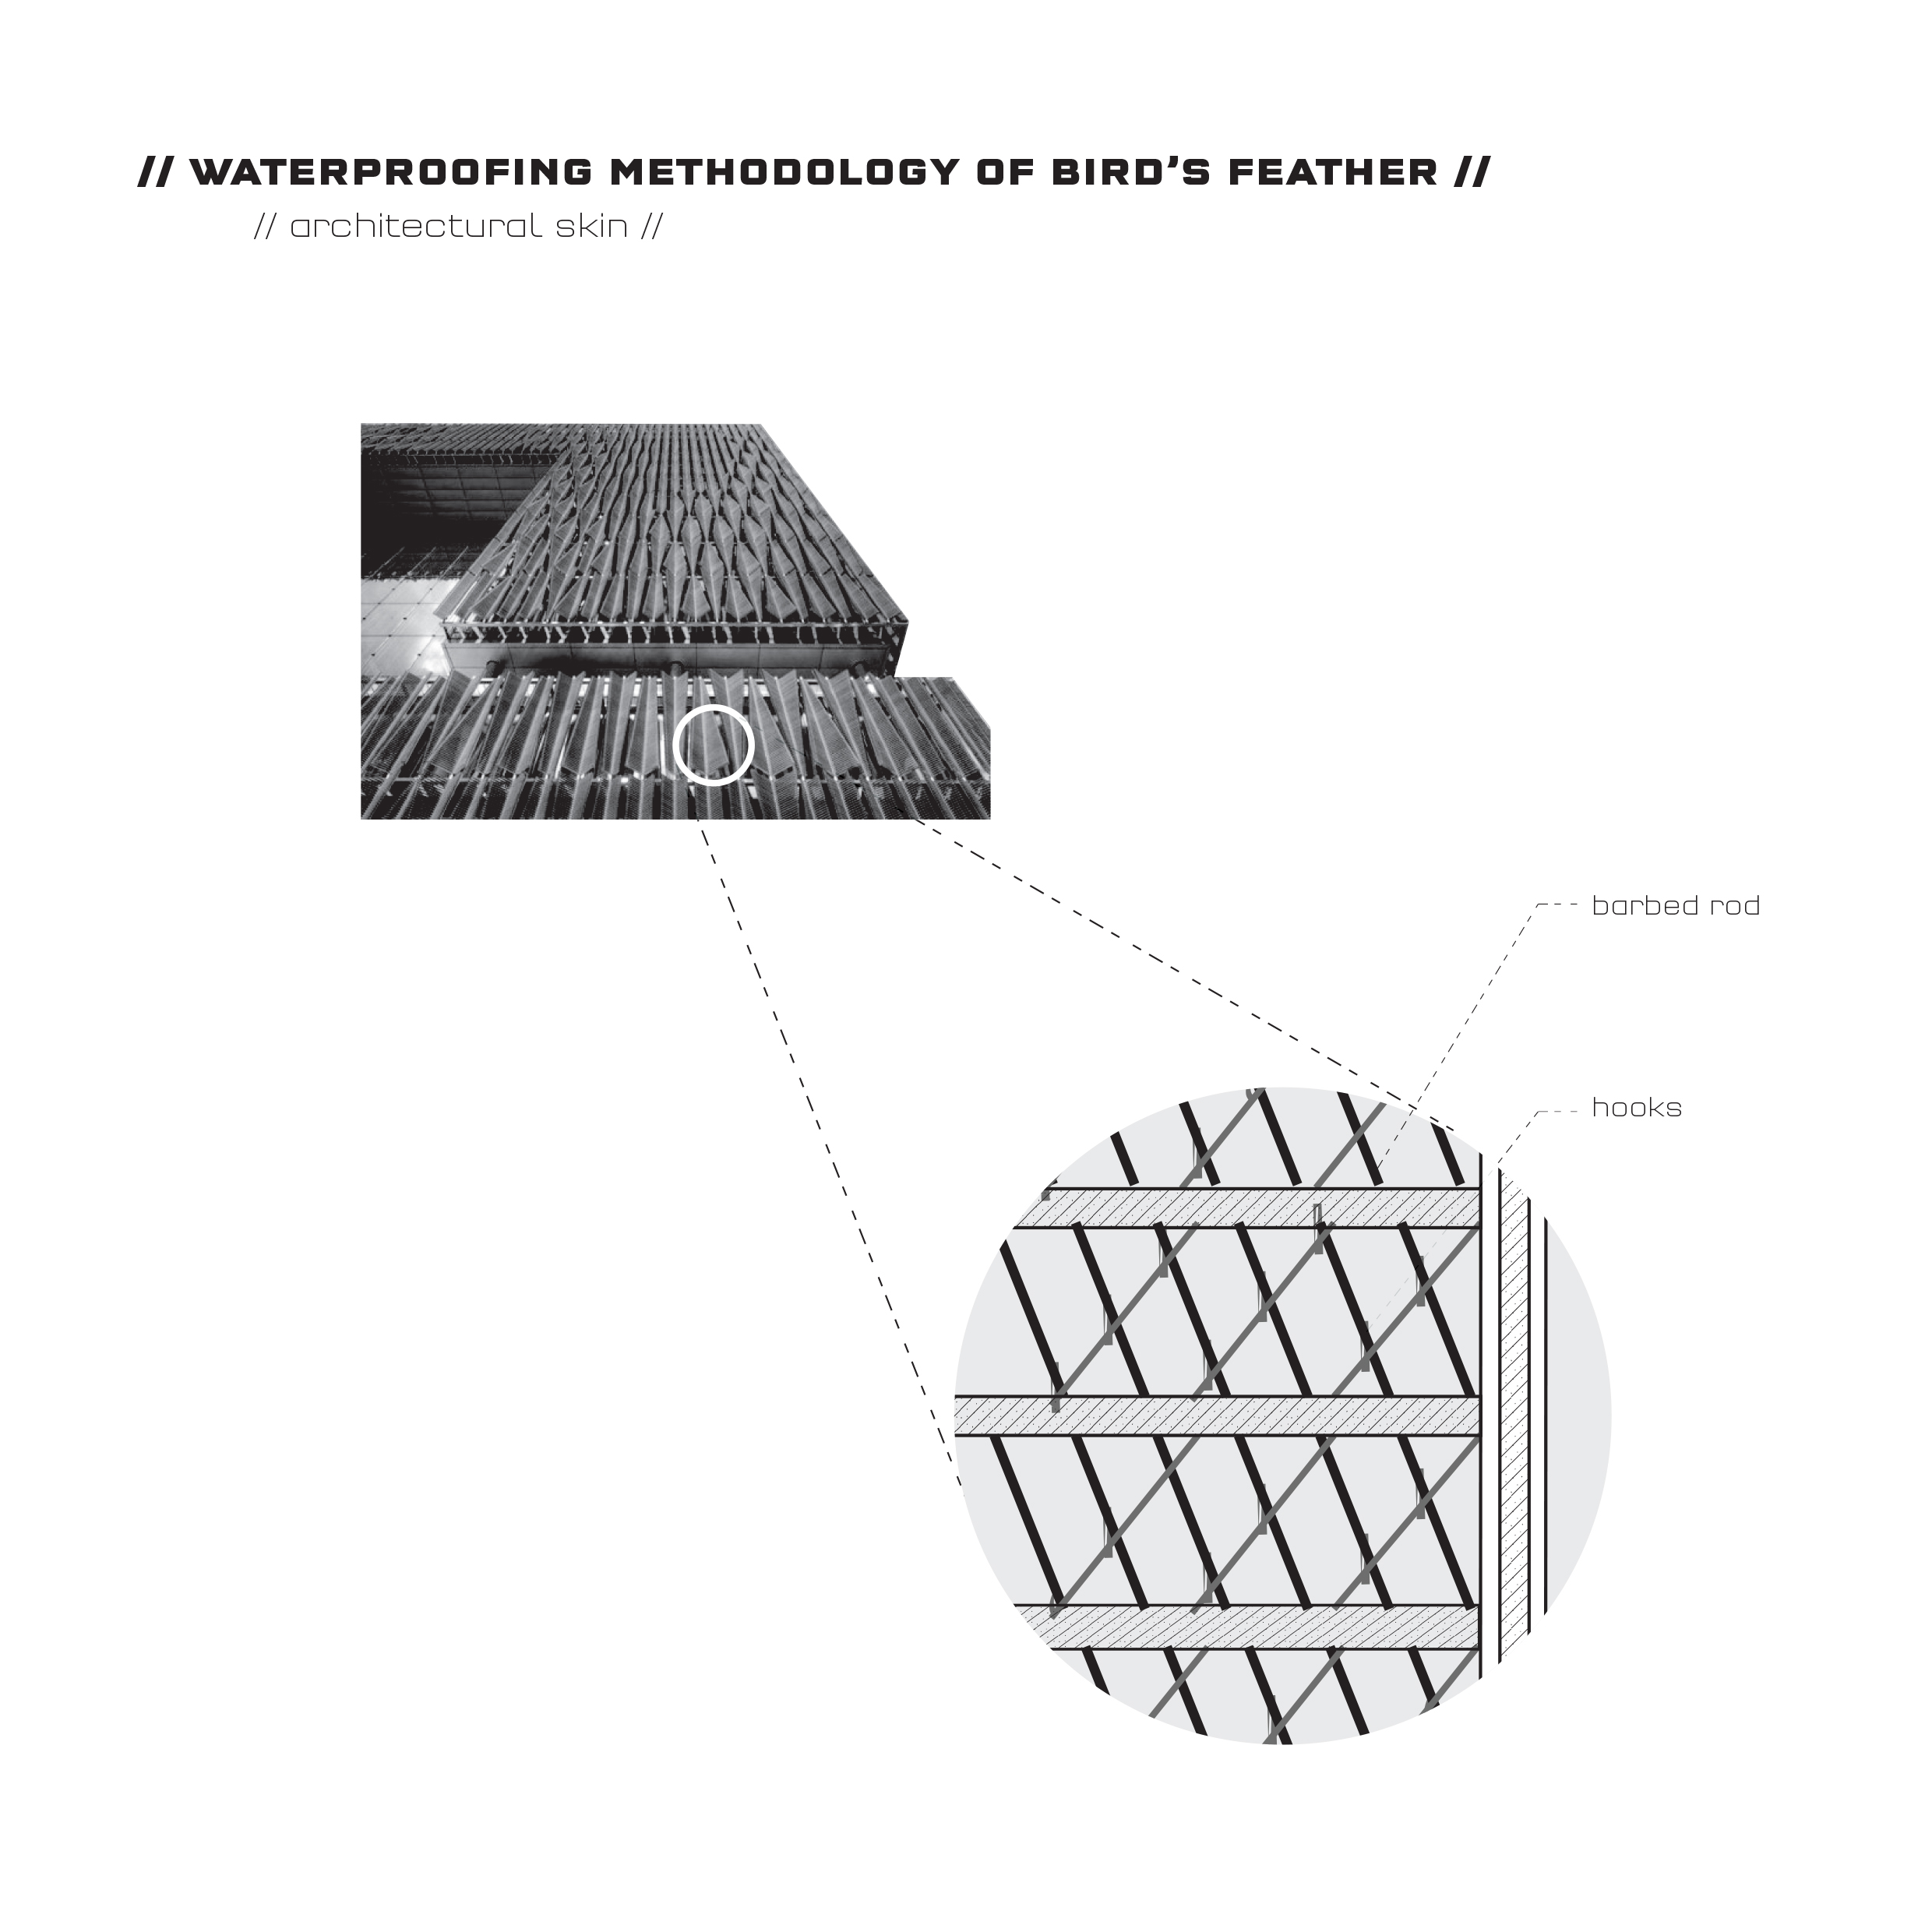 Biology Bird Feather Waterproofing Methodologies